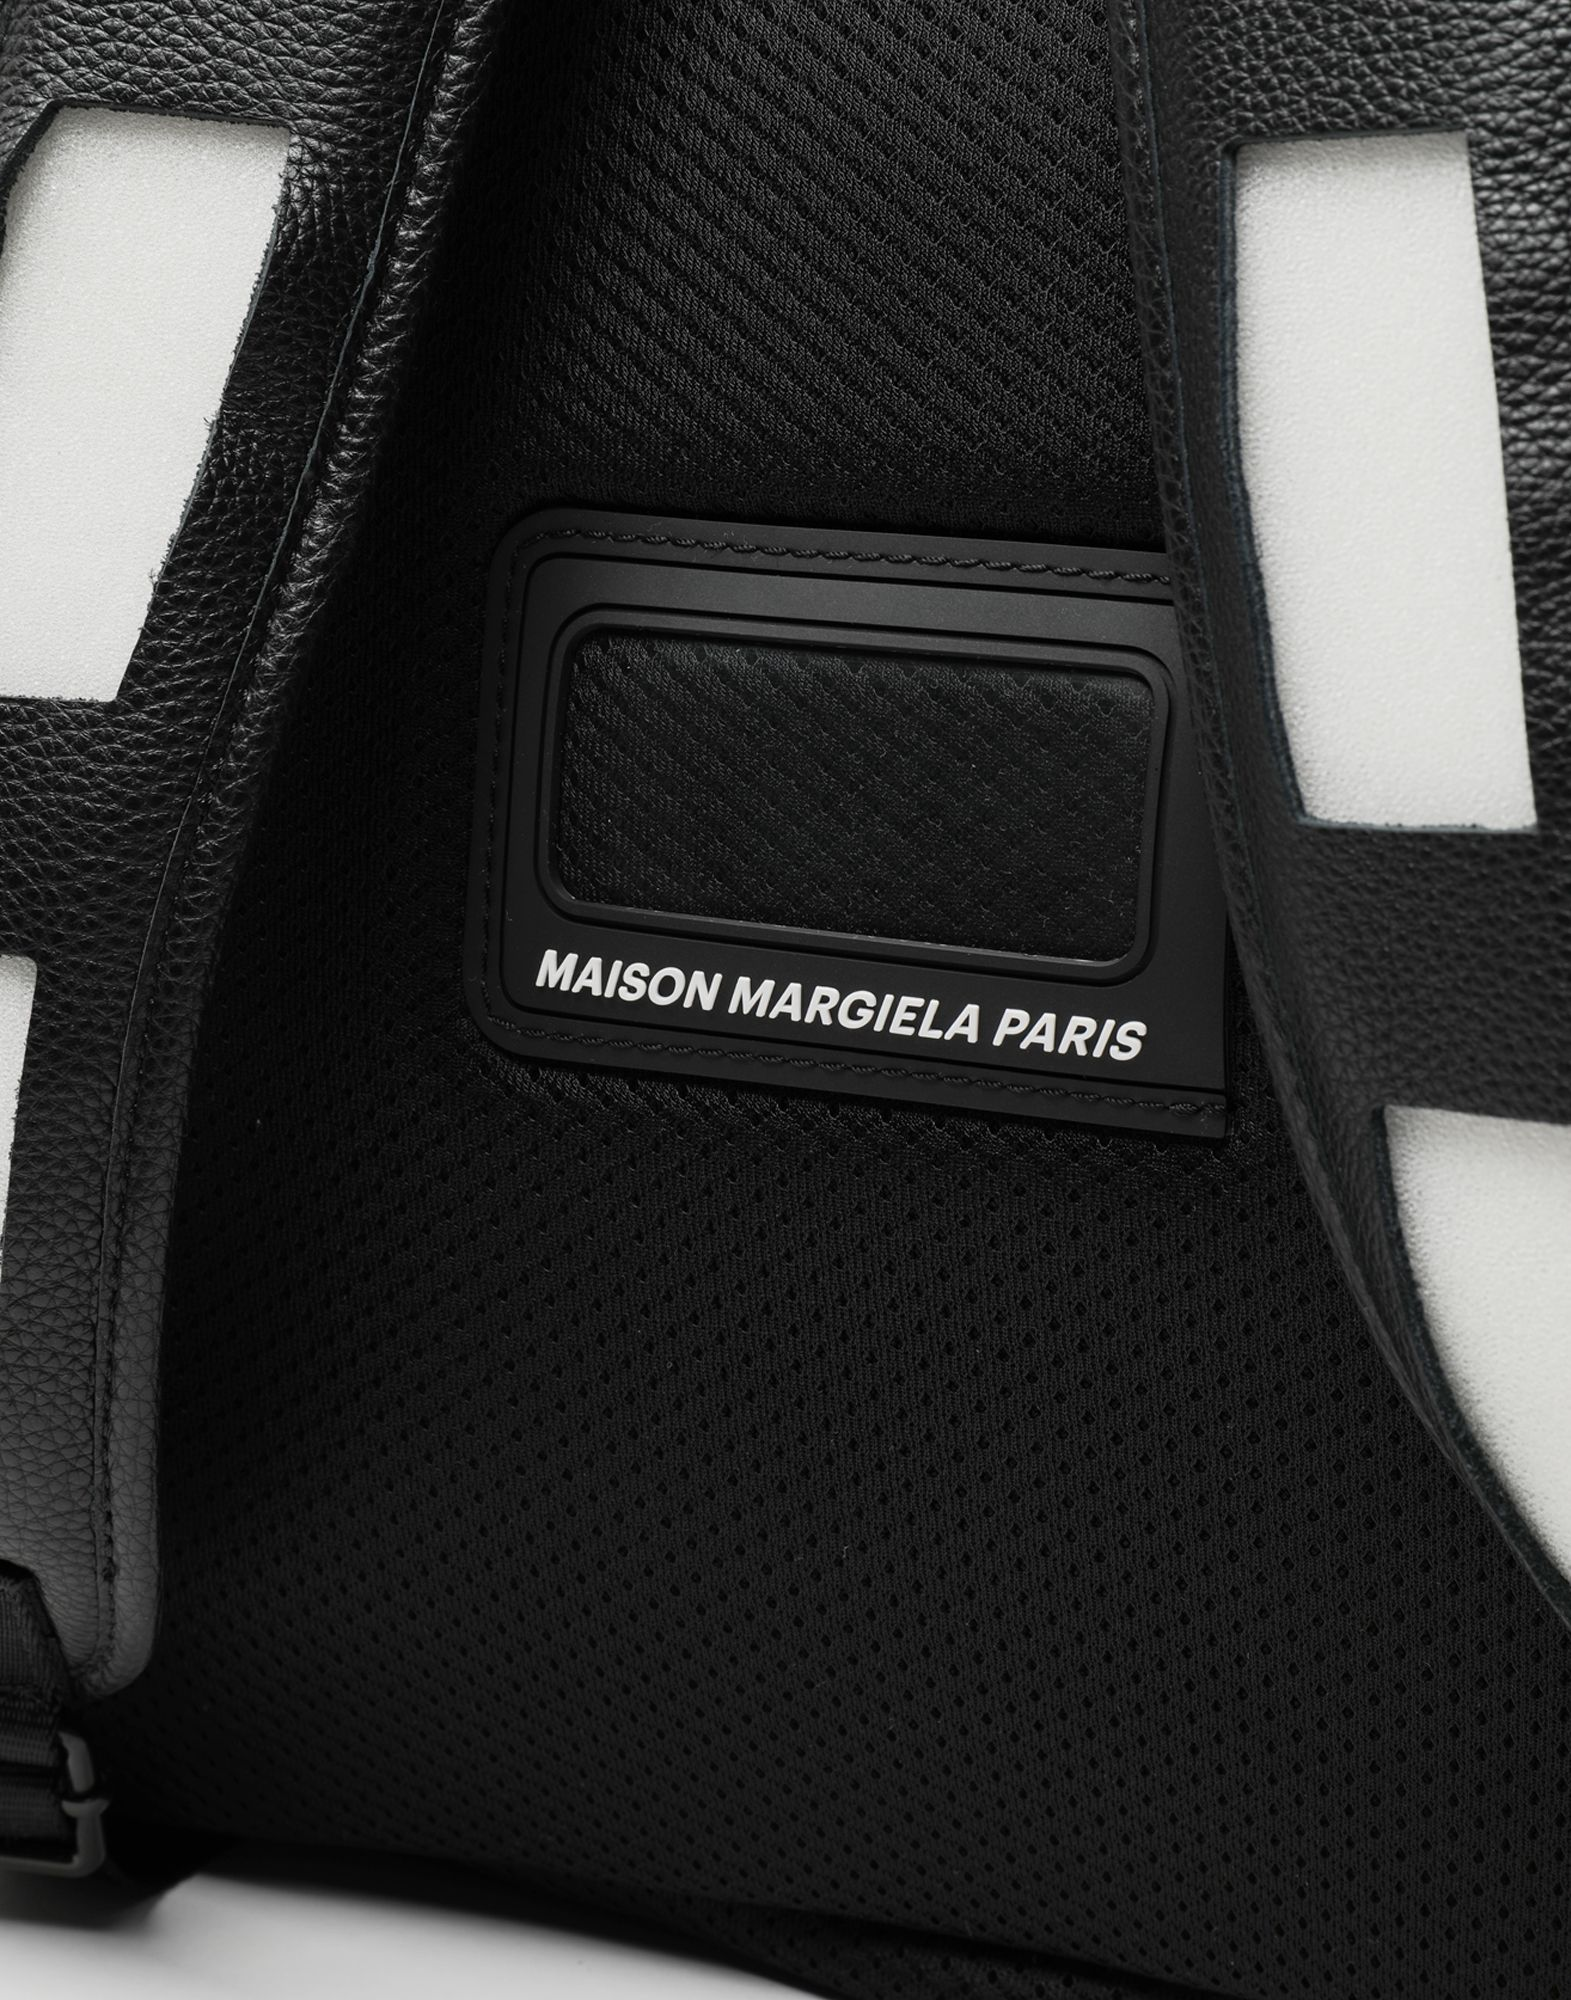 MAISON MARGIELA Décortiqué レザー&PVC バックパック リュックサック メンズ e